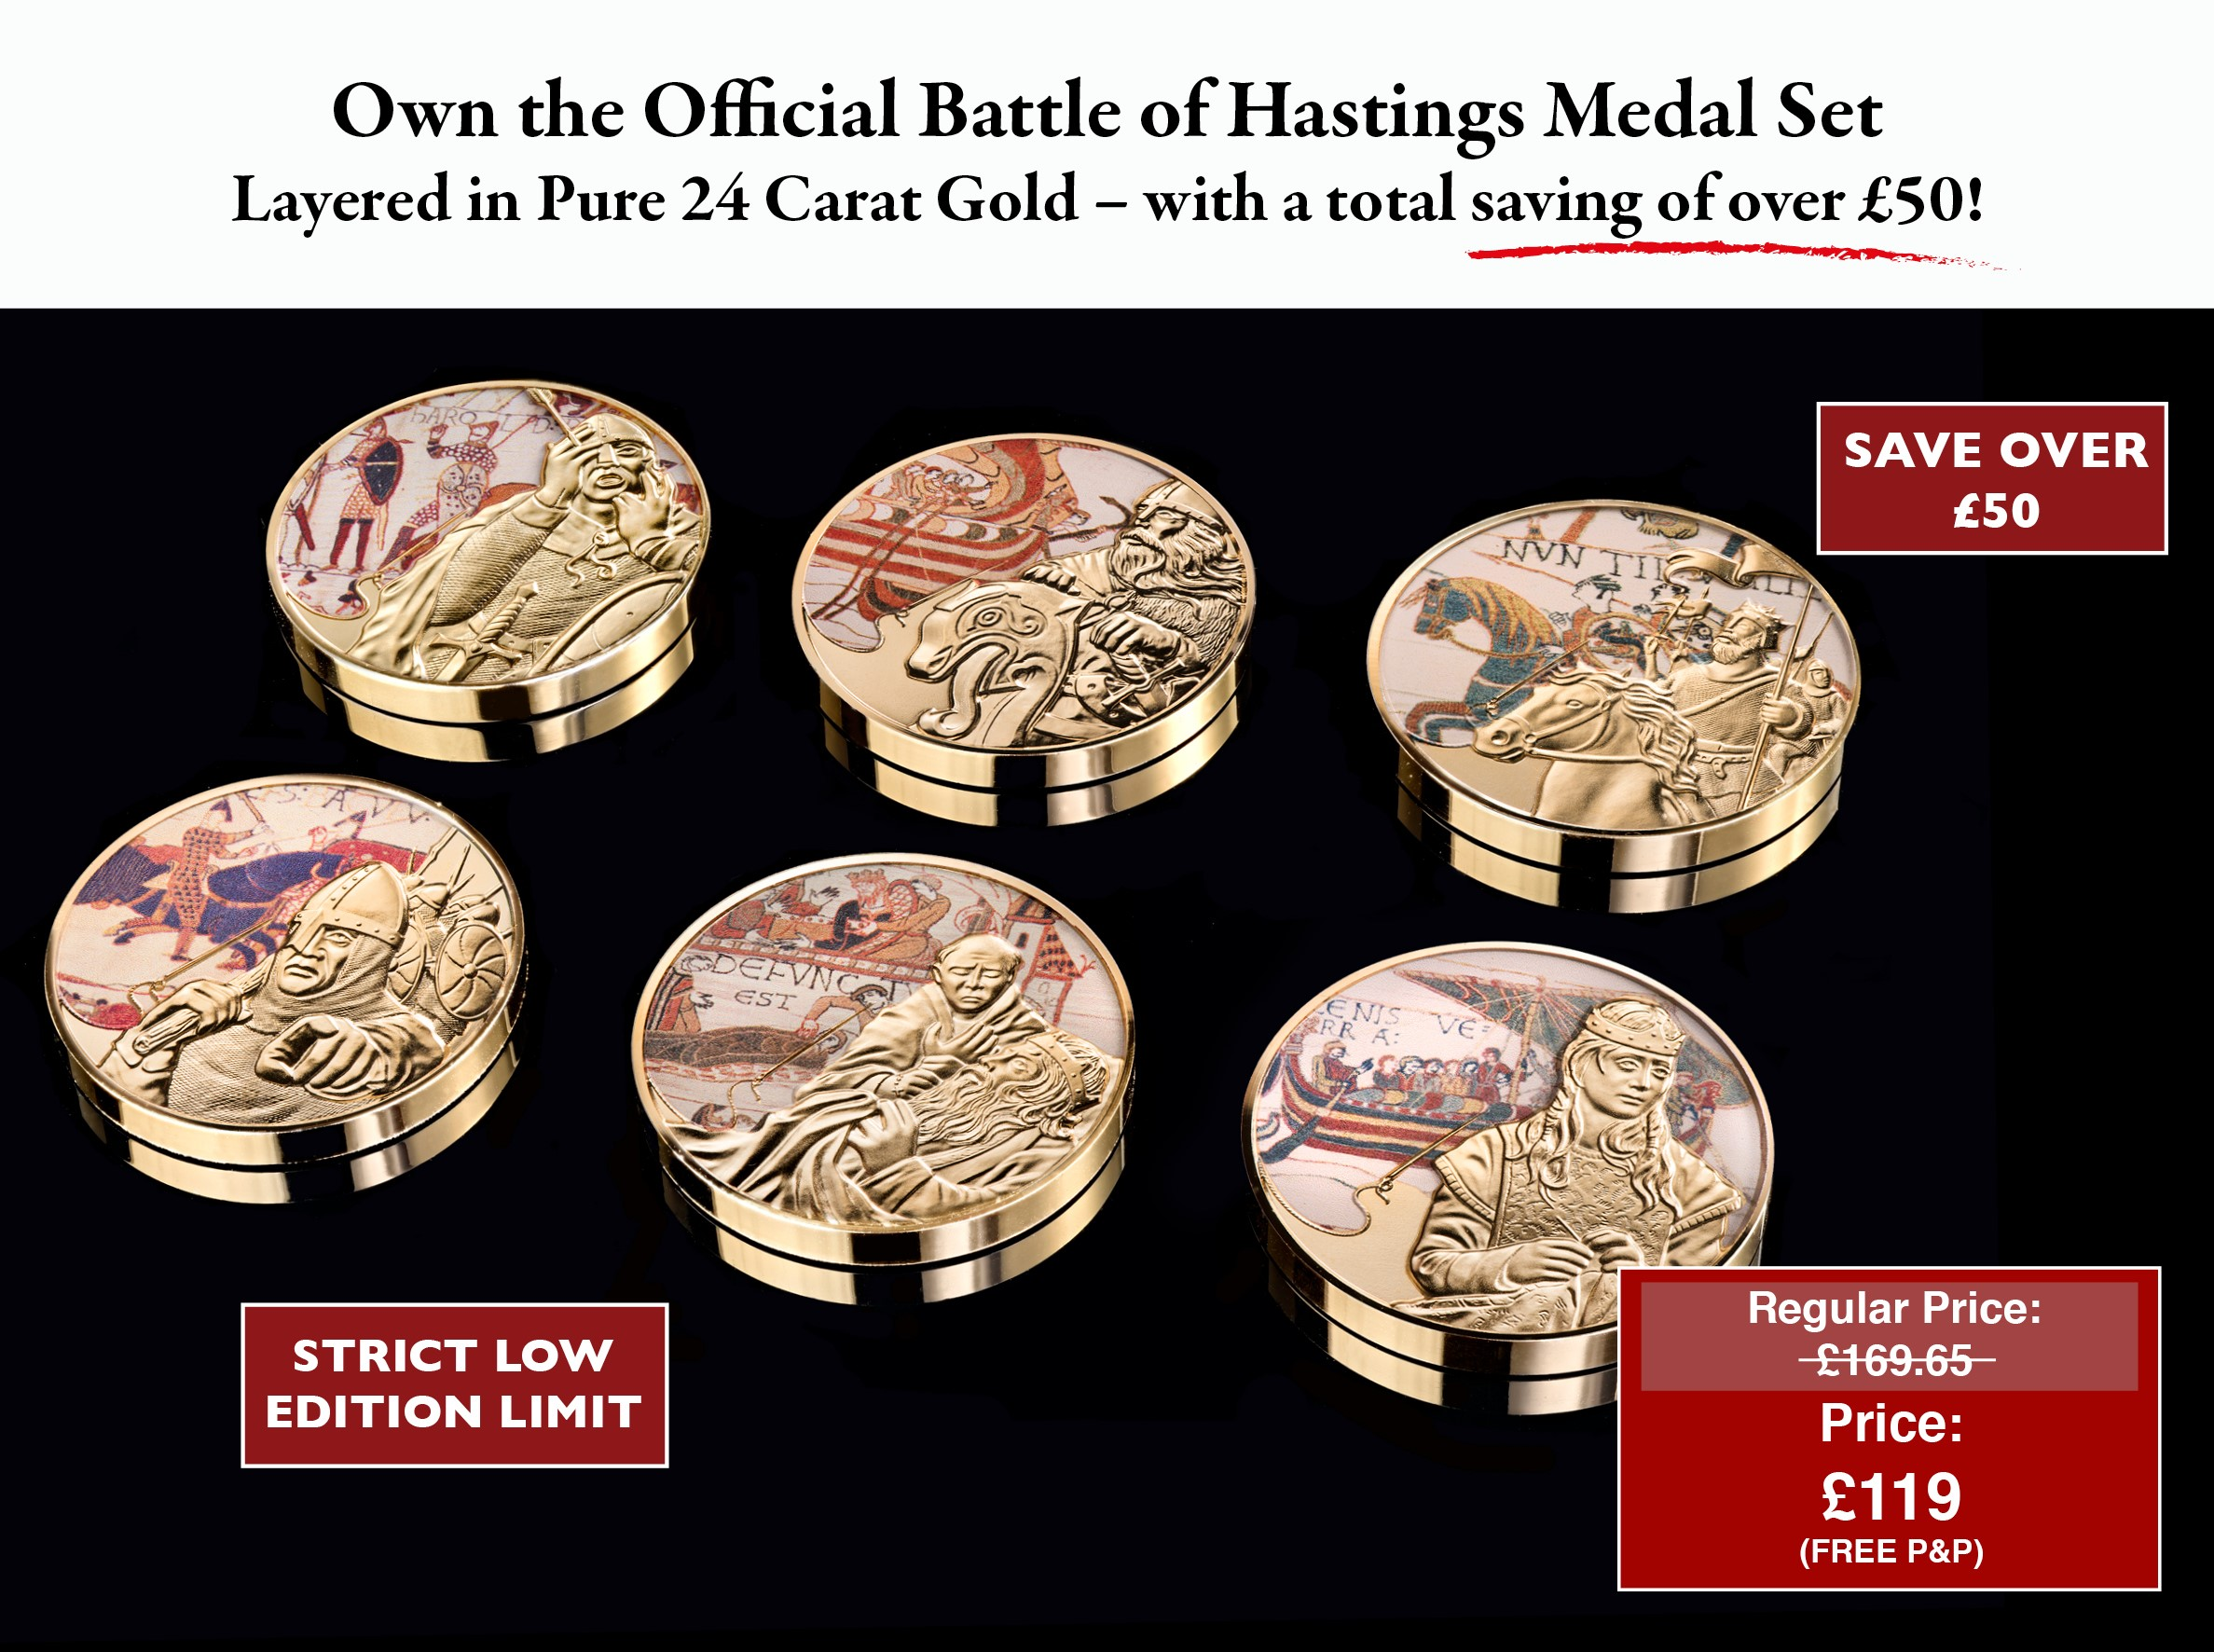 Your Invitation to Own the Complete Battle of Hastings Medal Set at the very special price of just £119.00